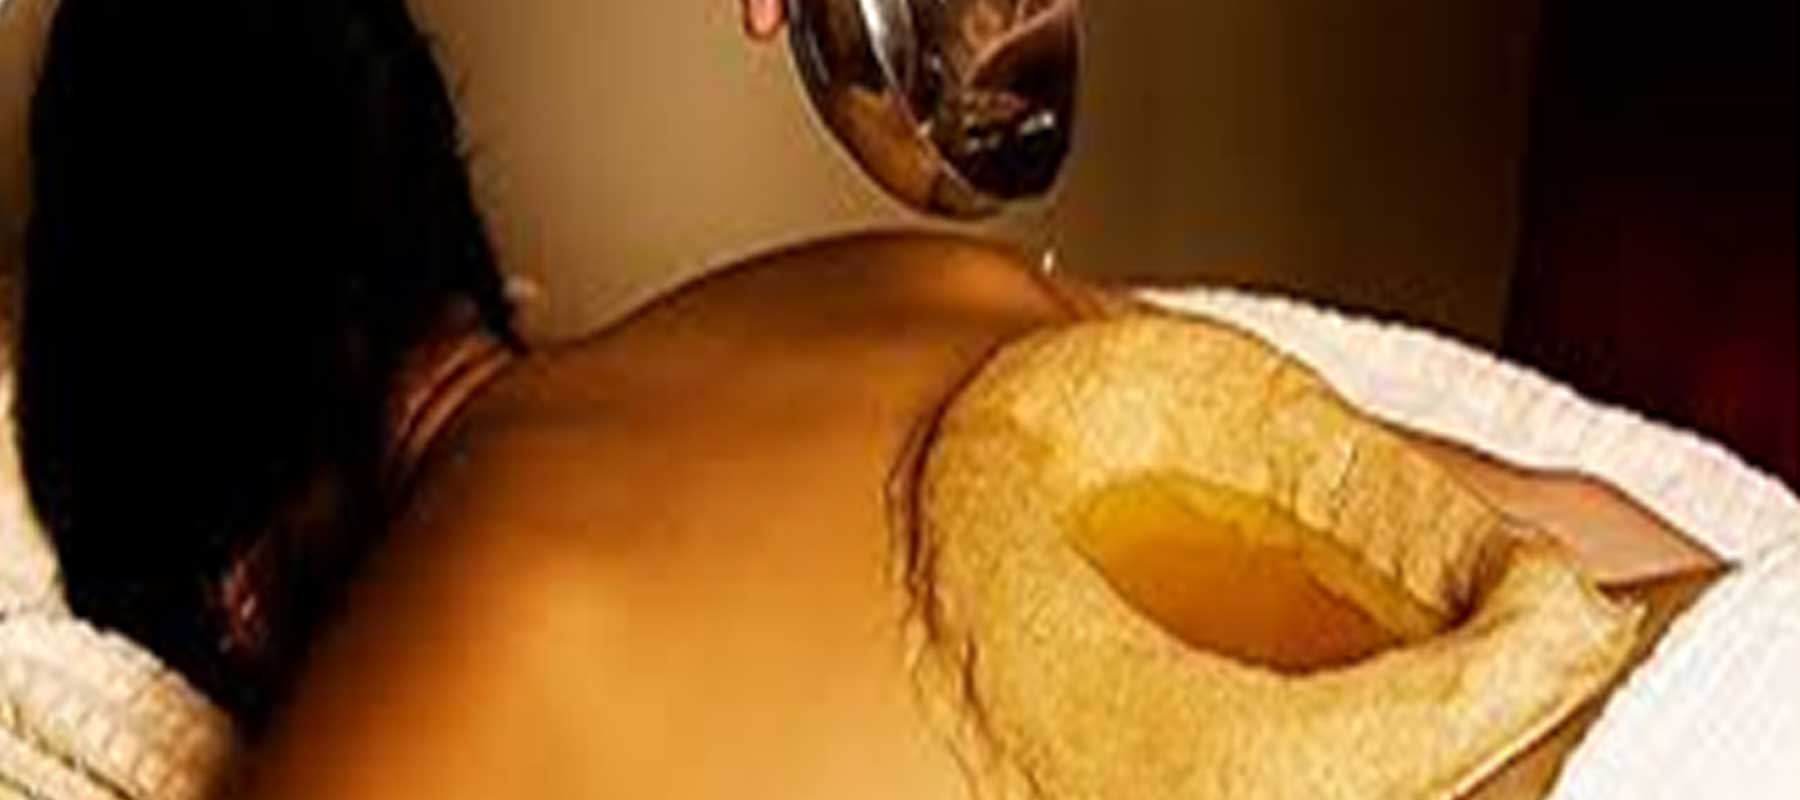 Kerala-Massage-Center--in-Qatar-Kadee-Vasthy